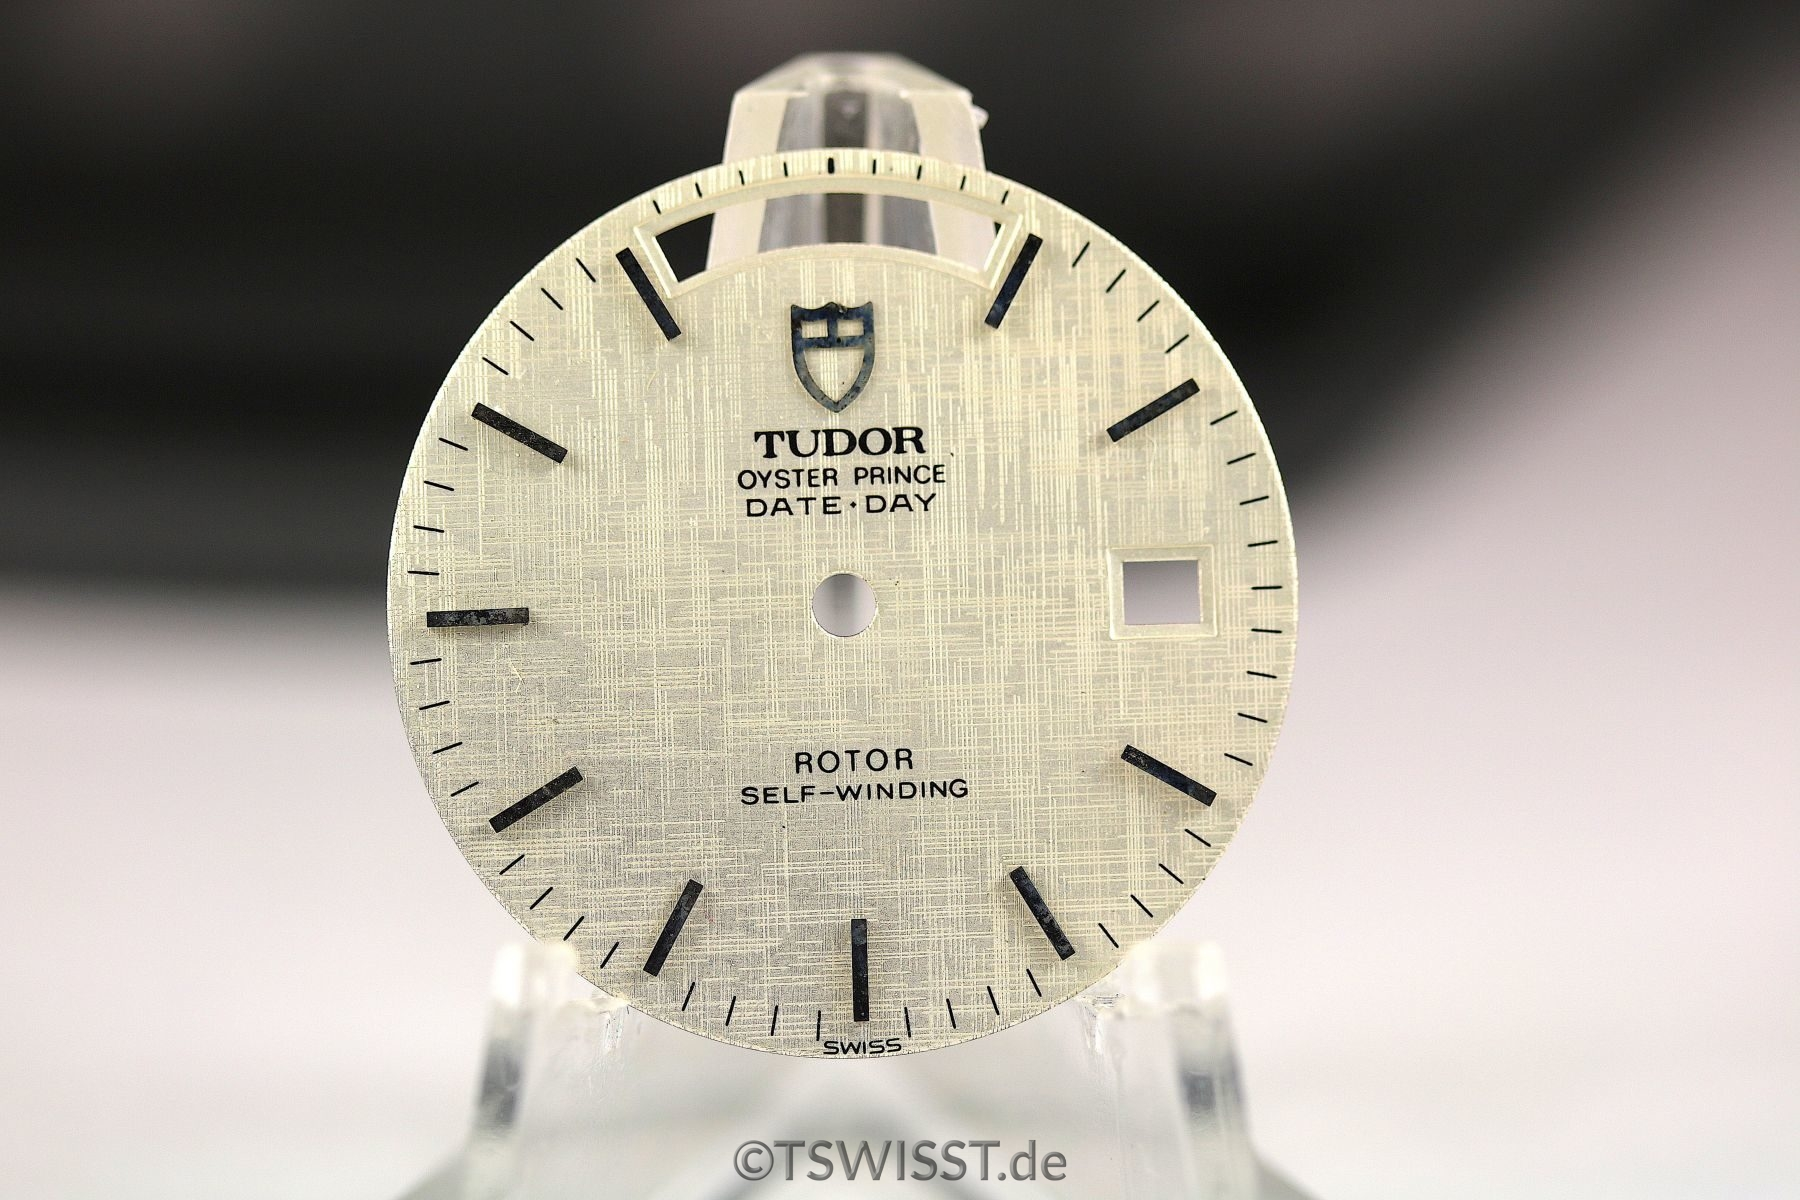 Tudor Date-day dial